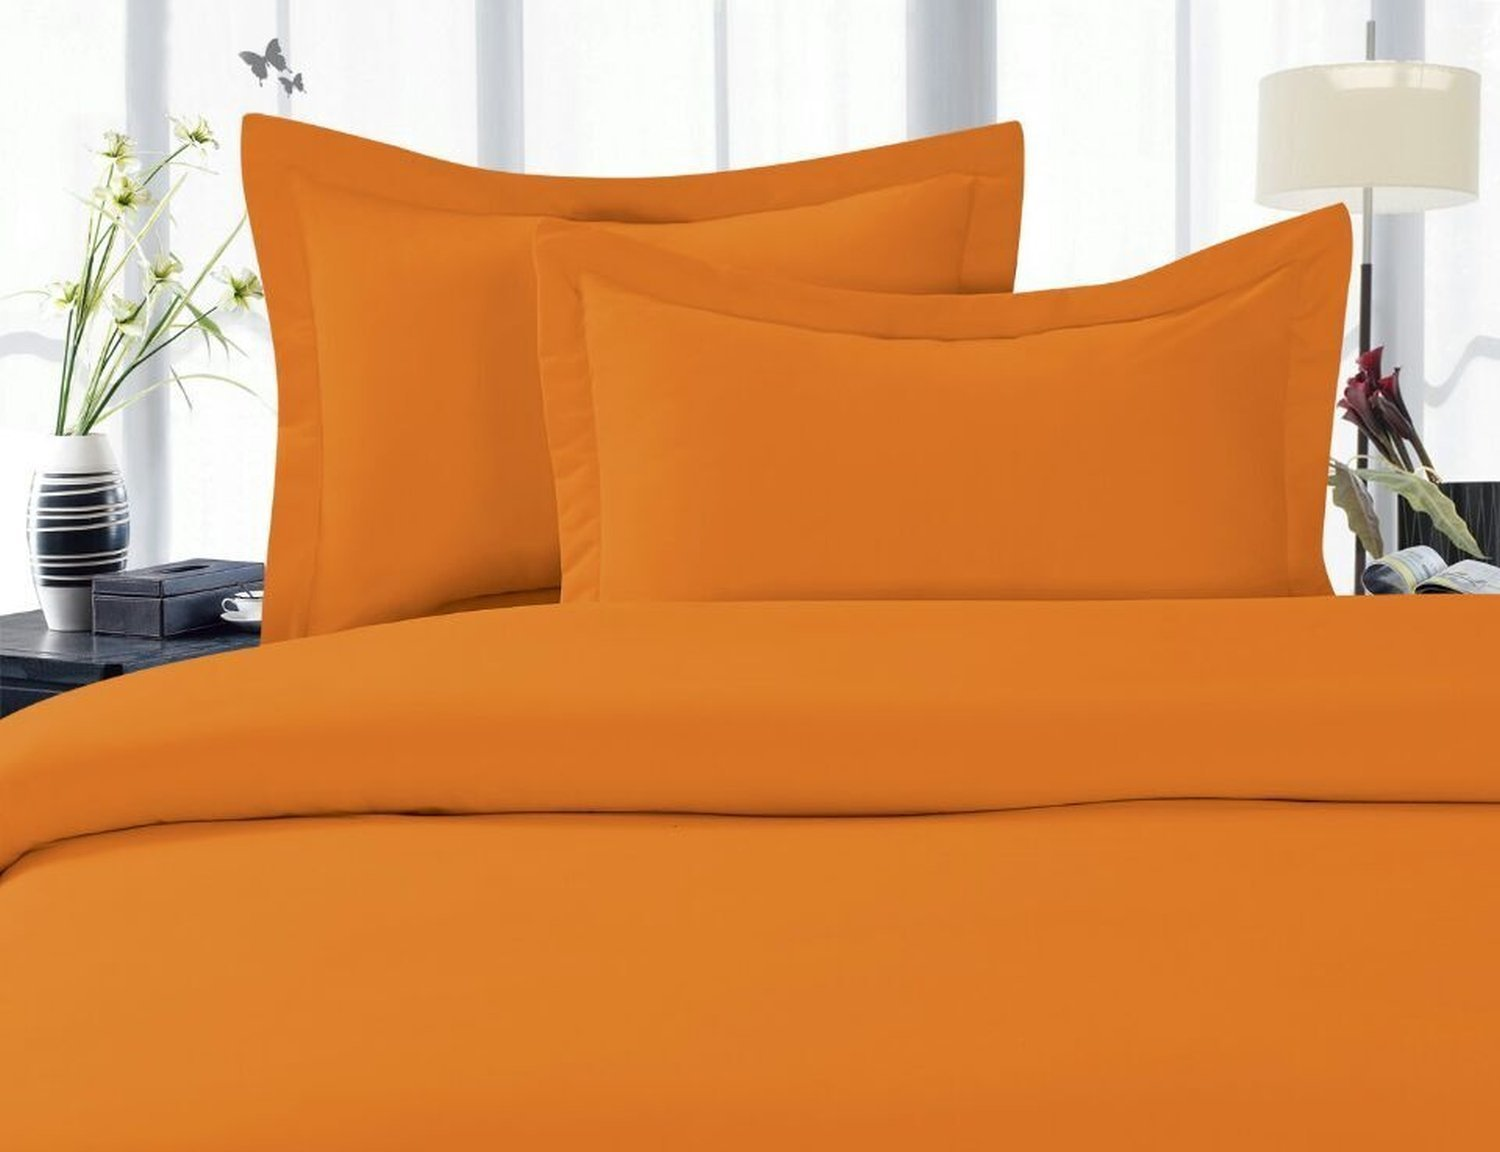 4 Piece Bed Sheet Set, Deep Pocket, HypoAllergenic   Full Elite Orange